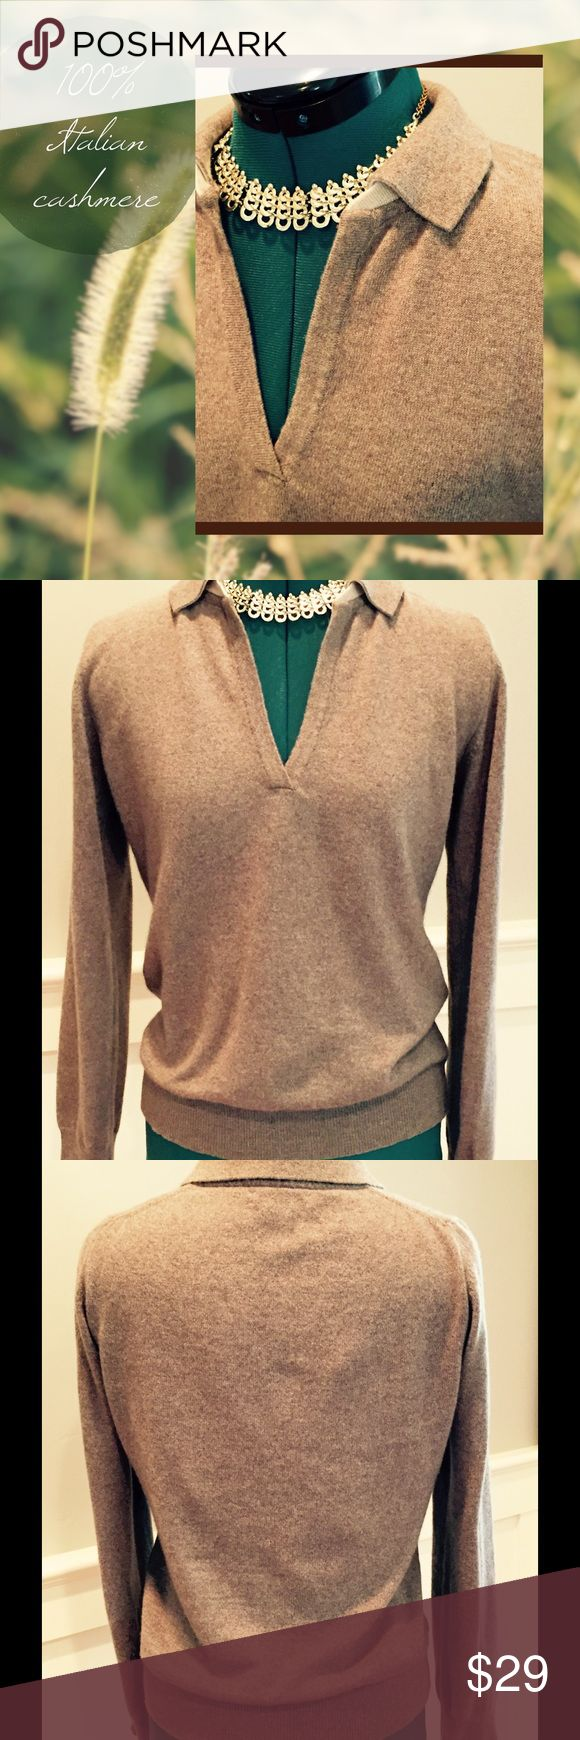 17 Best ideas about Brown Sweater on Pinterest